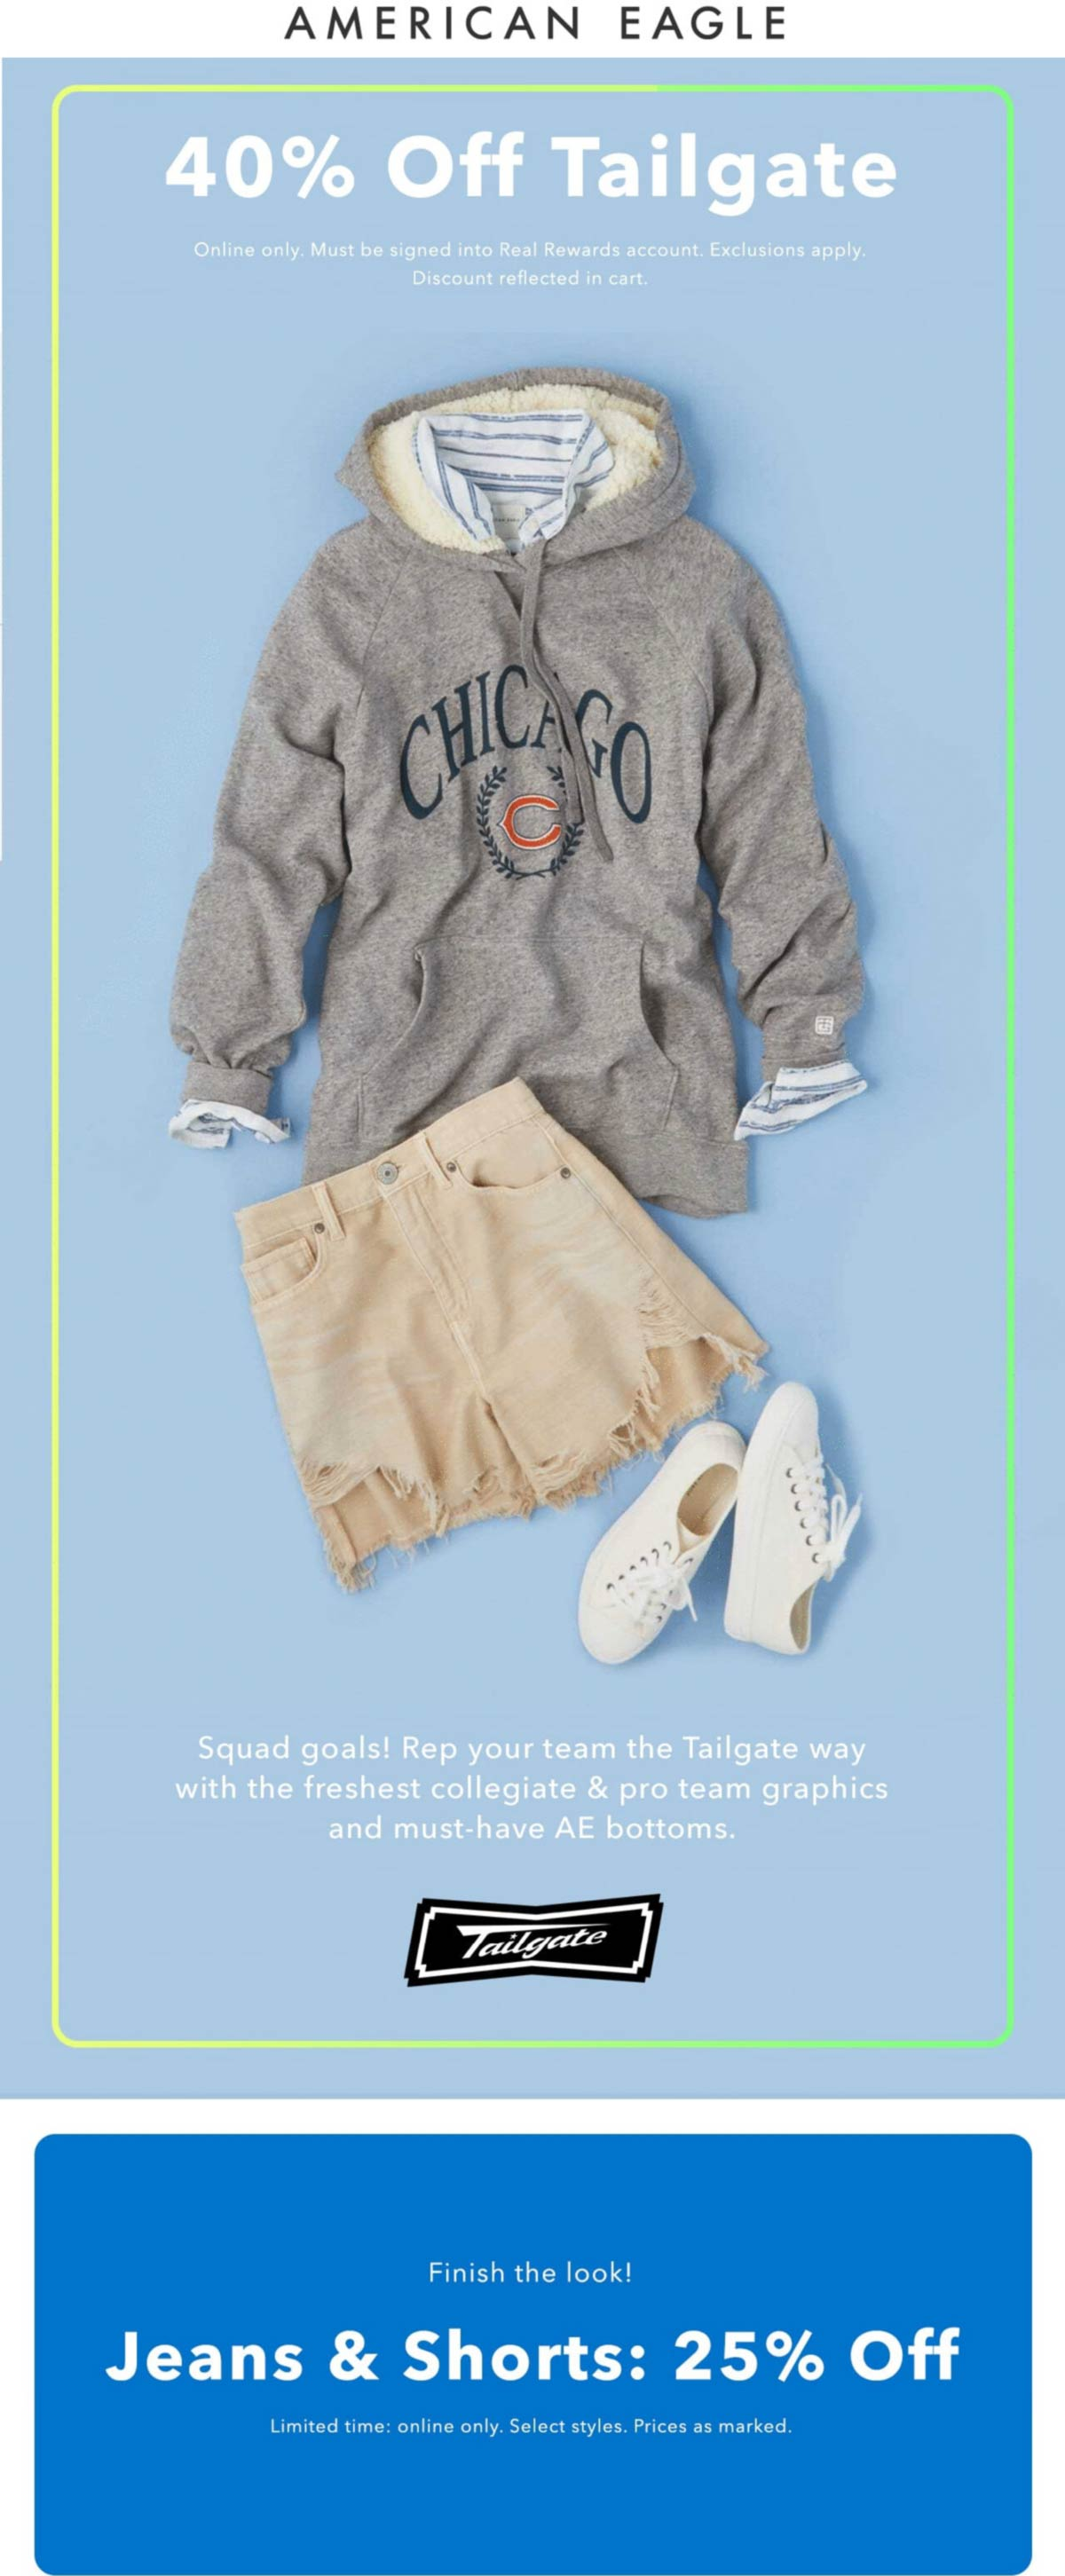 American Eagle stores Coupon  25% off jeans & shorts, 40% off tailgate today at American Eagle #americaneagle